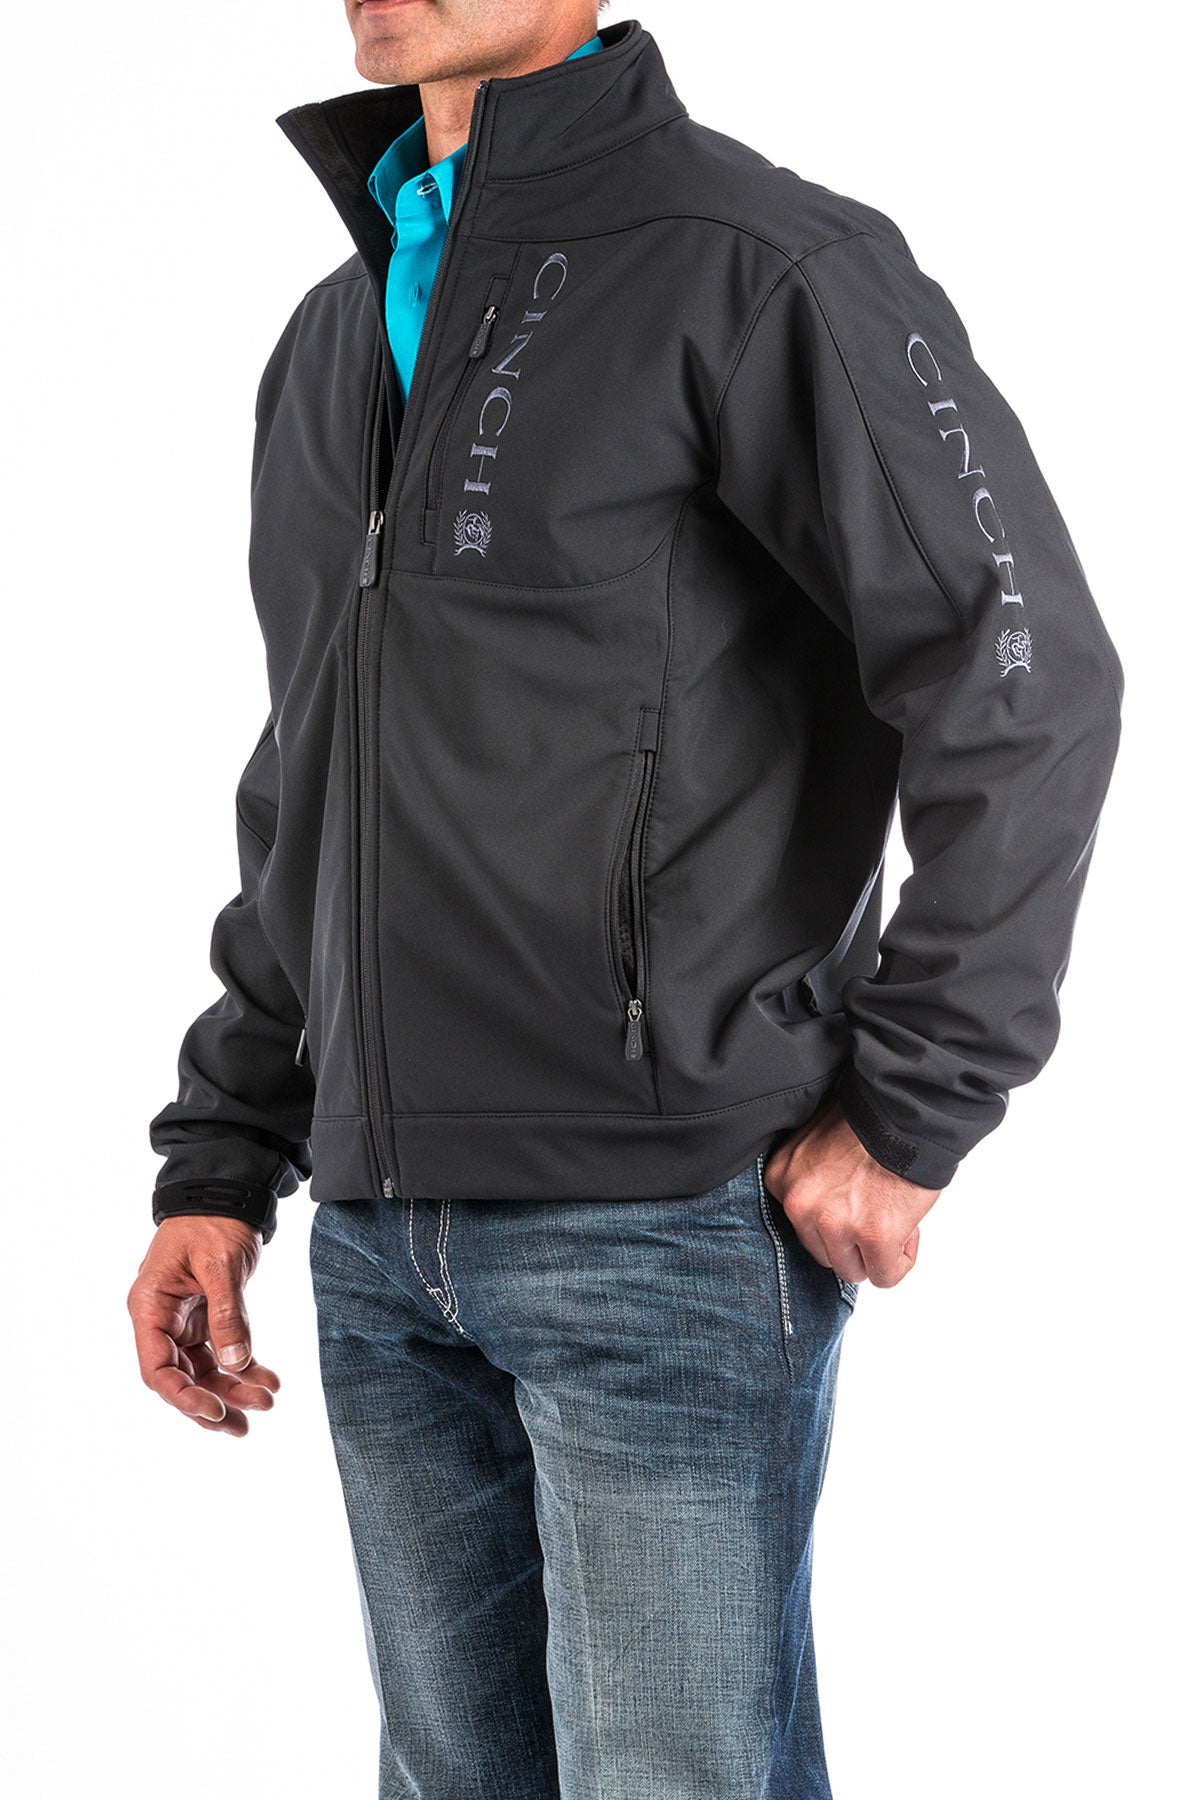 'Cinch' Men's Bonded Jacket - Black (3XL)